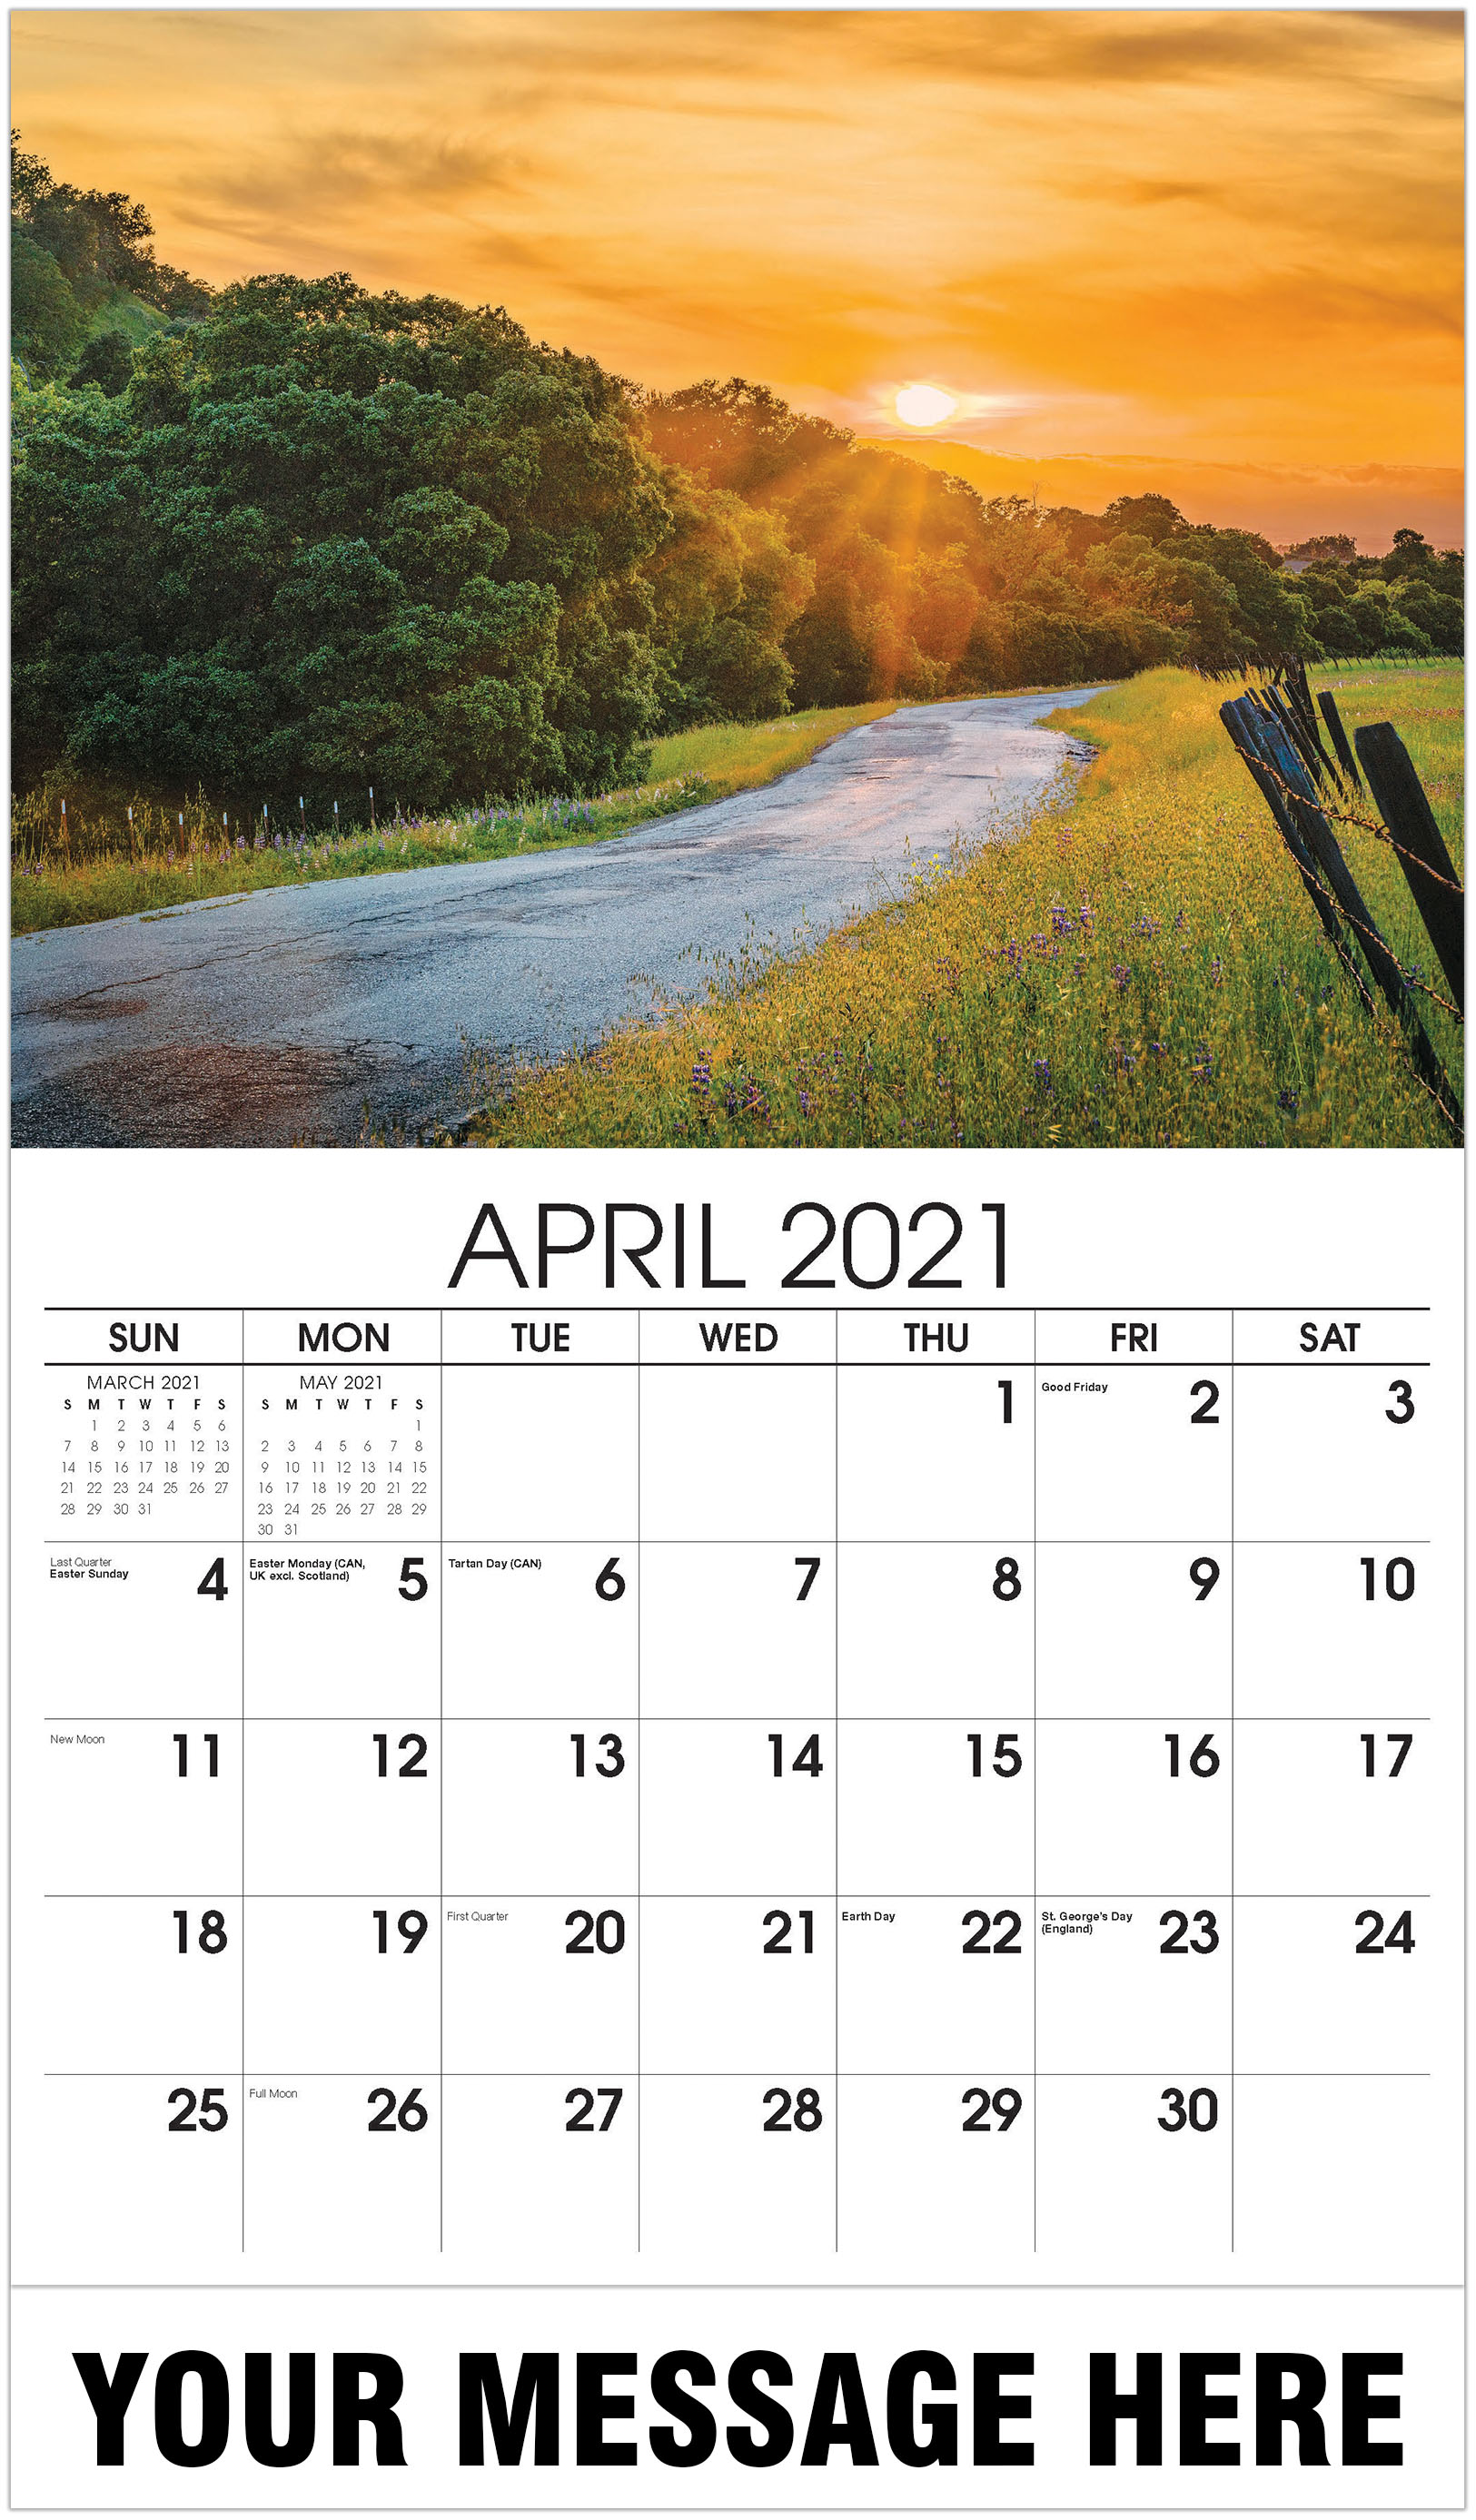 Sunset country road - April - Country Spirit 2021 Promotional Calendar